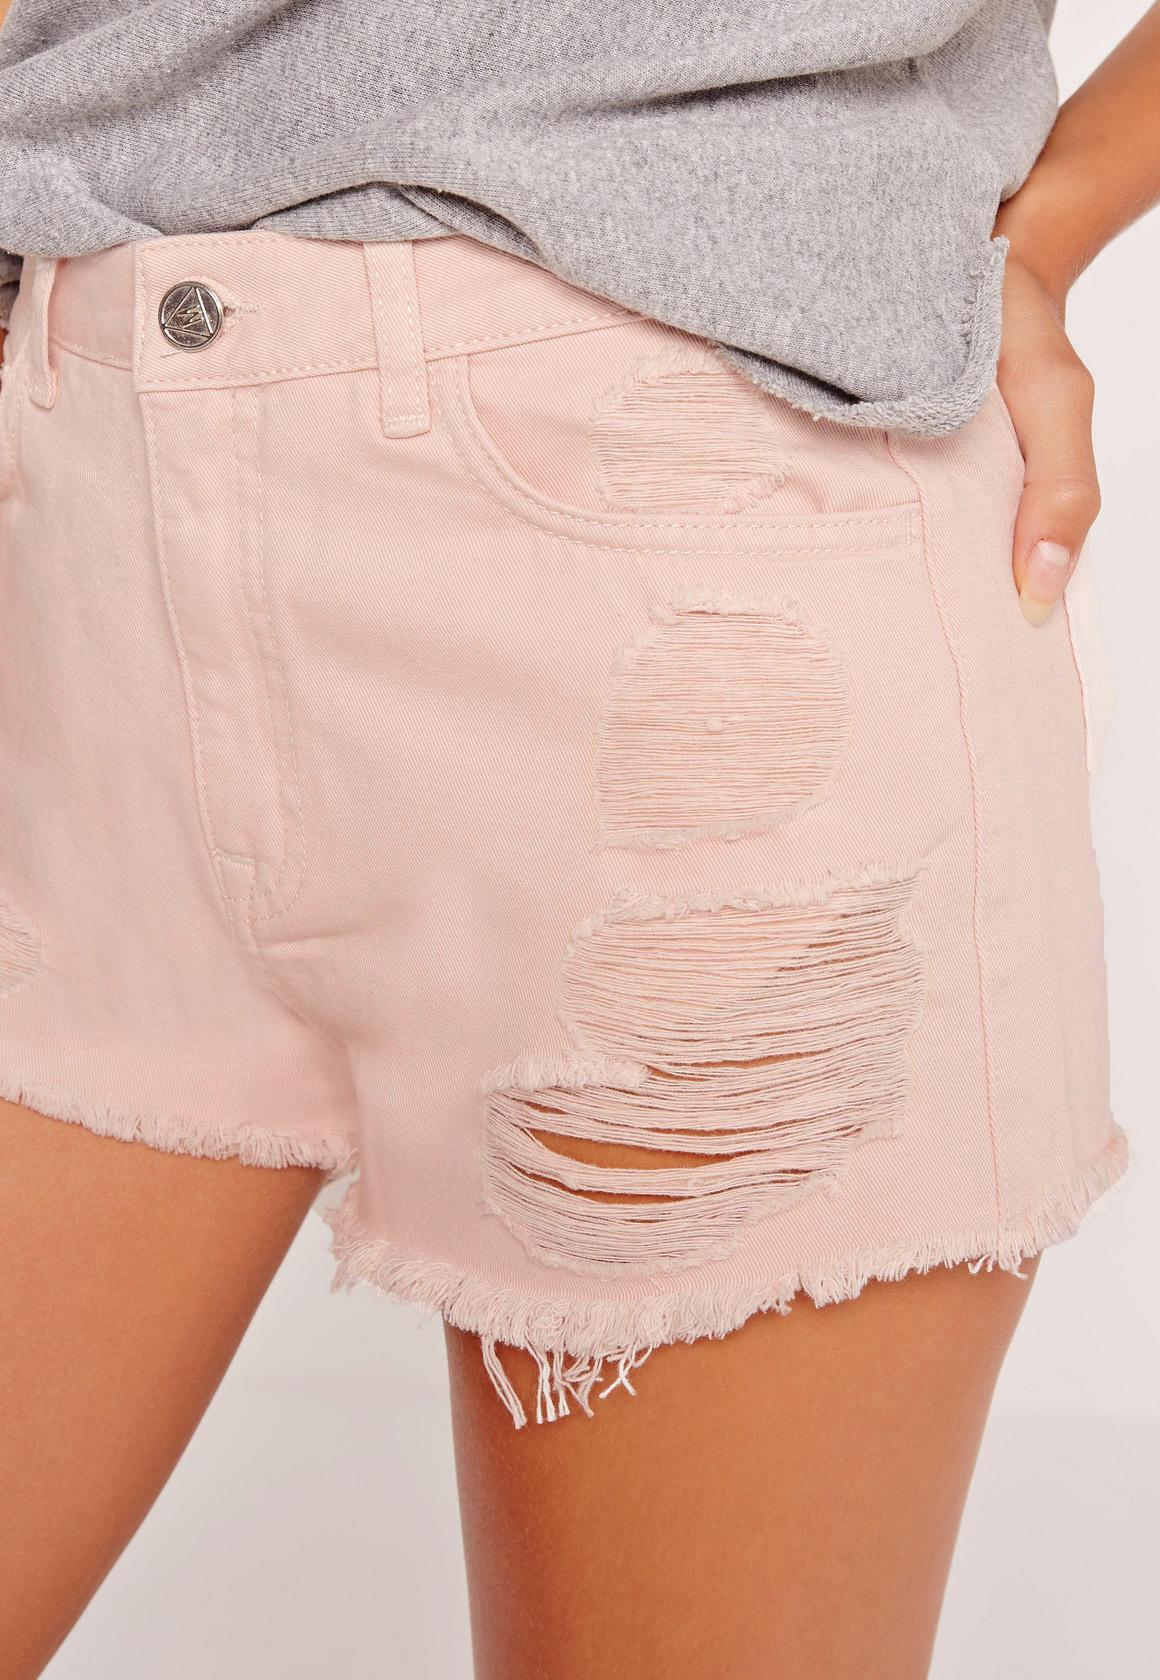 High Waisted Ripped Denim Shorts Pink. Was $43.00. Now $22.00 (50% off).  Previous Next